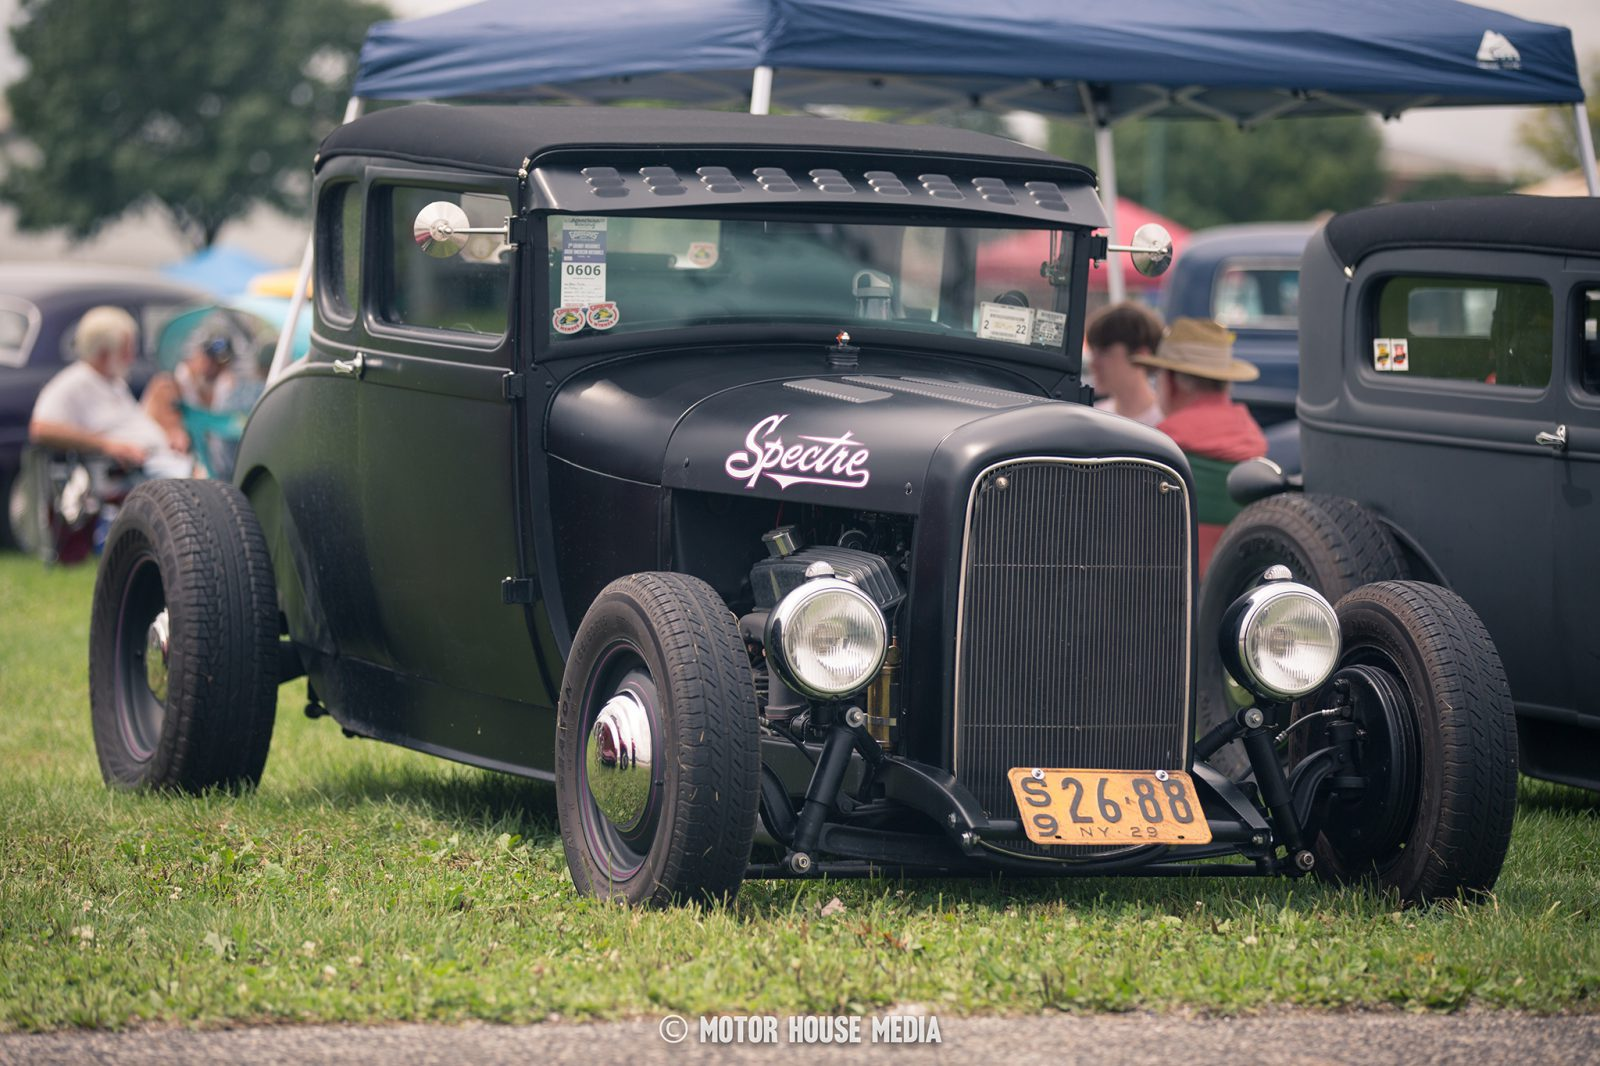 Gavins Buehler's '29 Ford model A a contender for the Next Generation Award